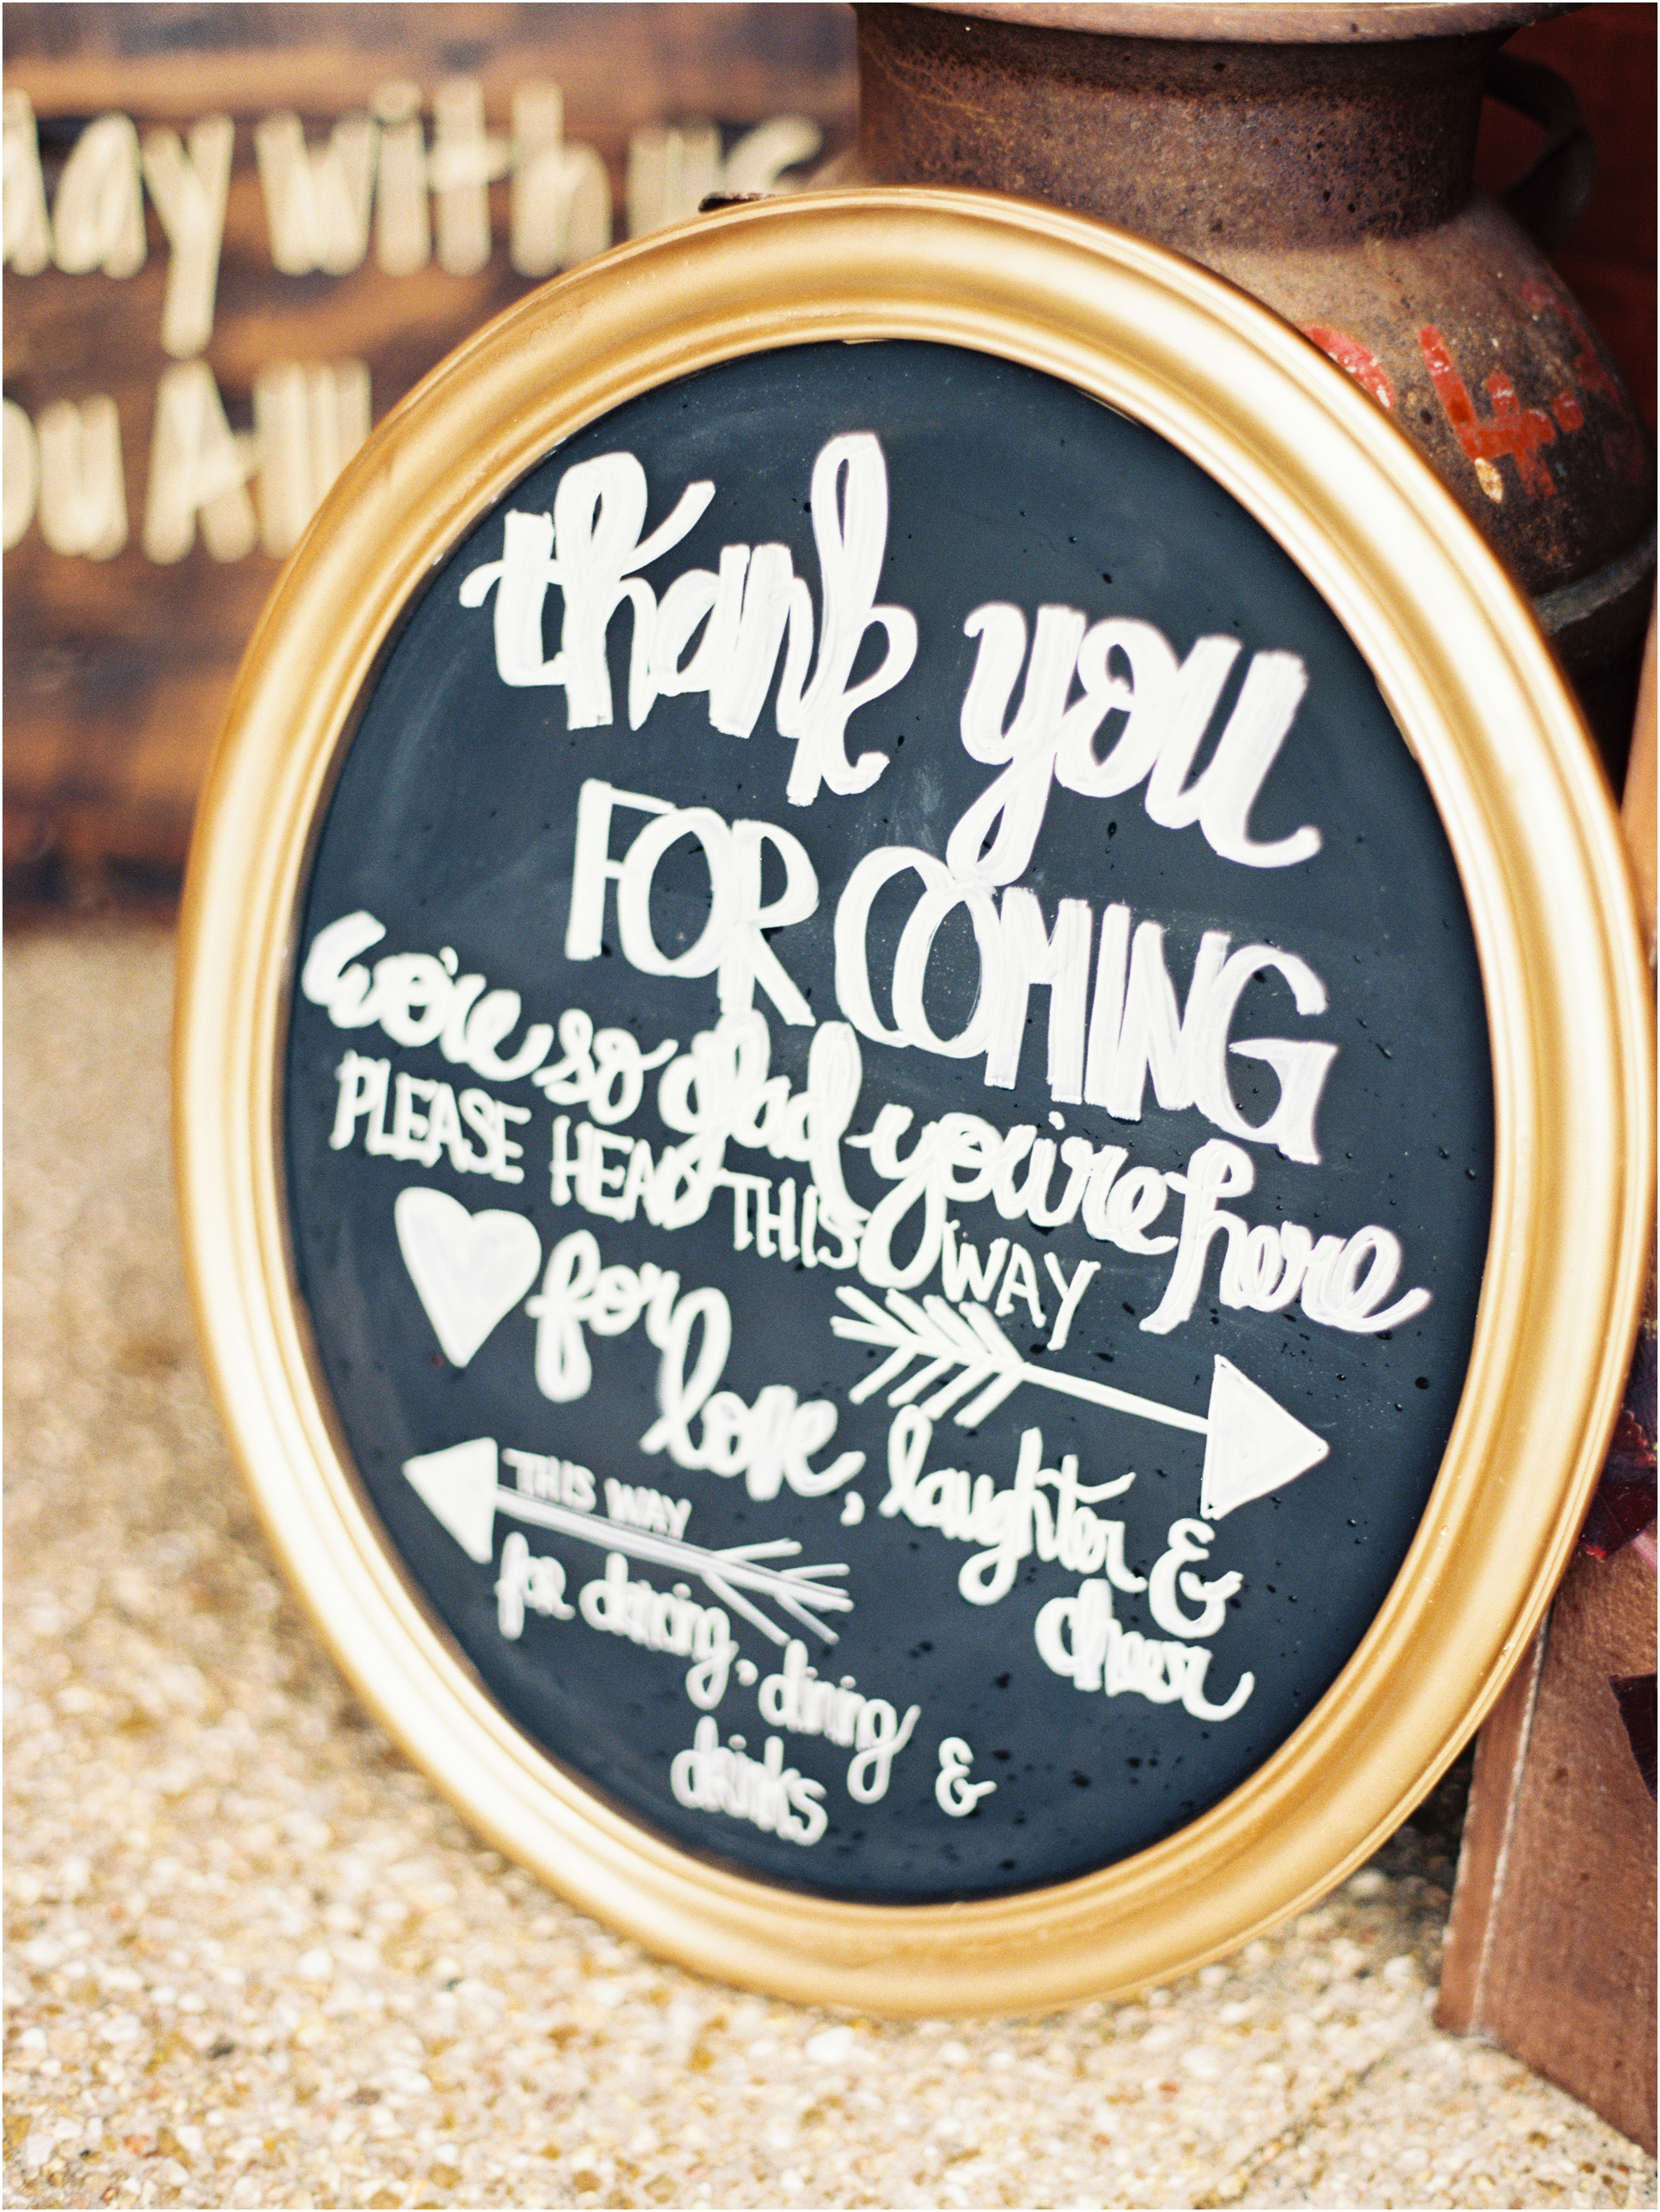 Ceremony Details at Timberline Barn by Jordan Brittley Photography (www.jordanbrittley.com)